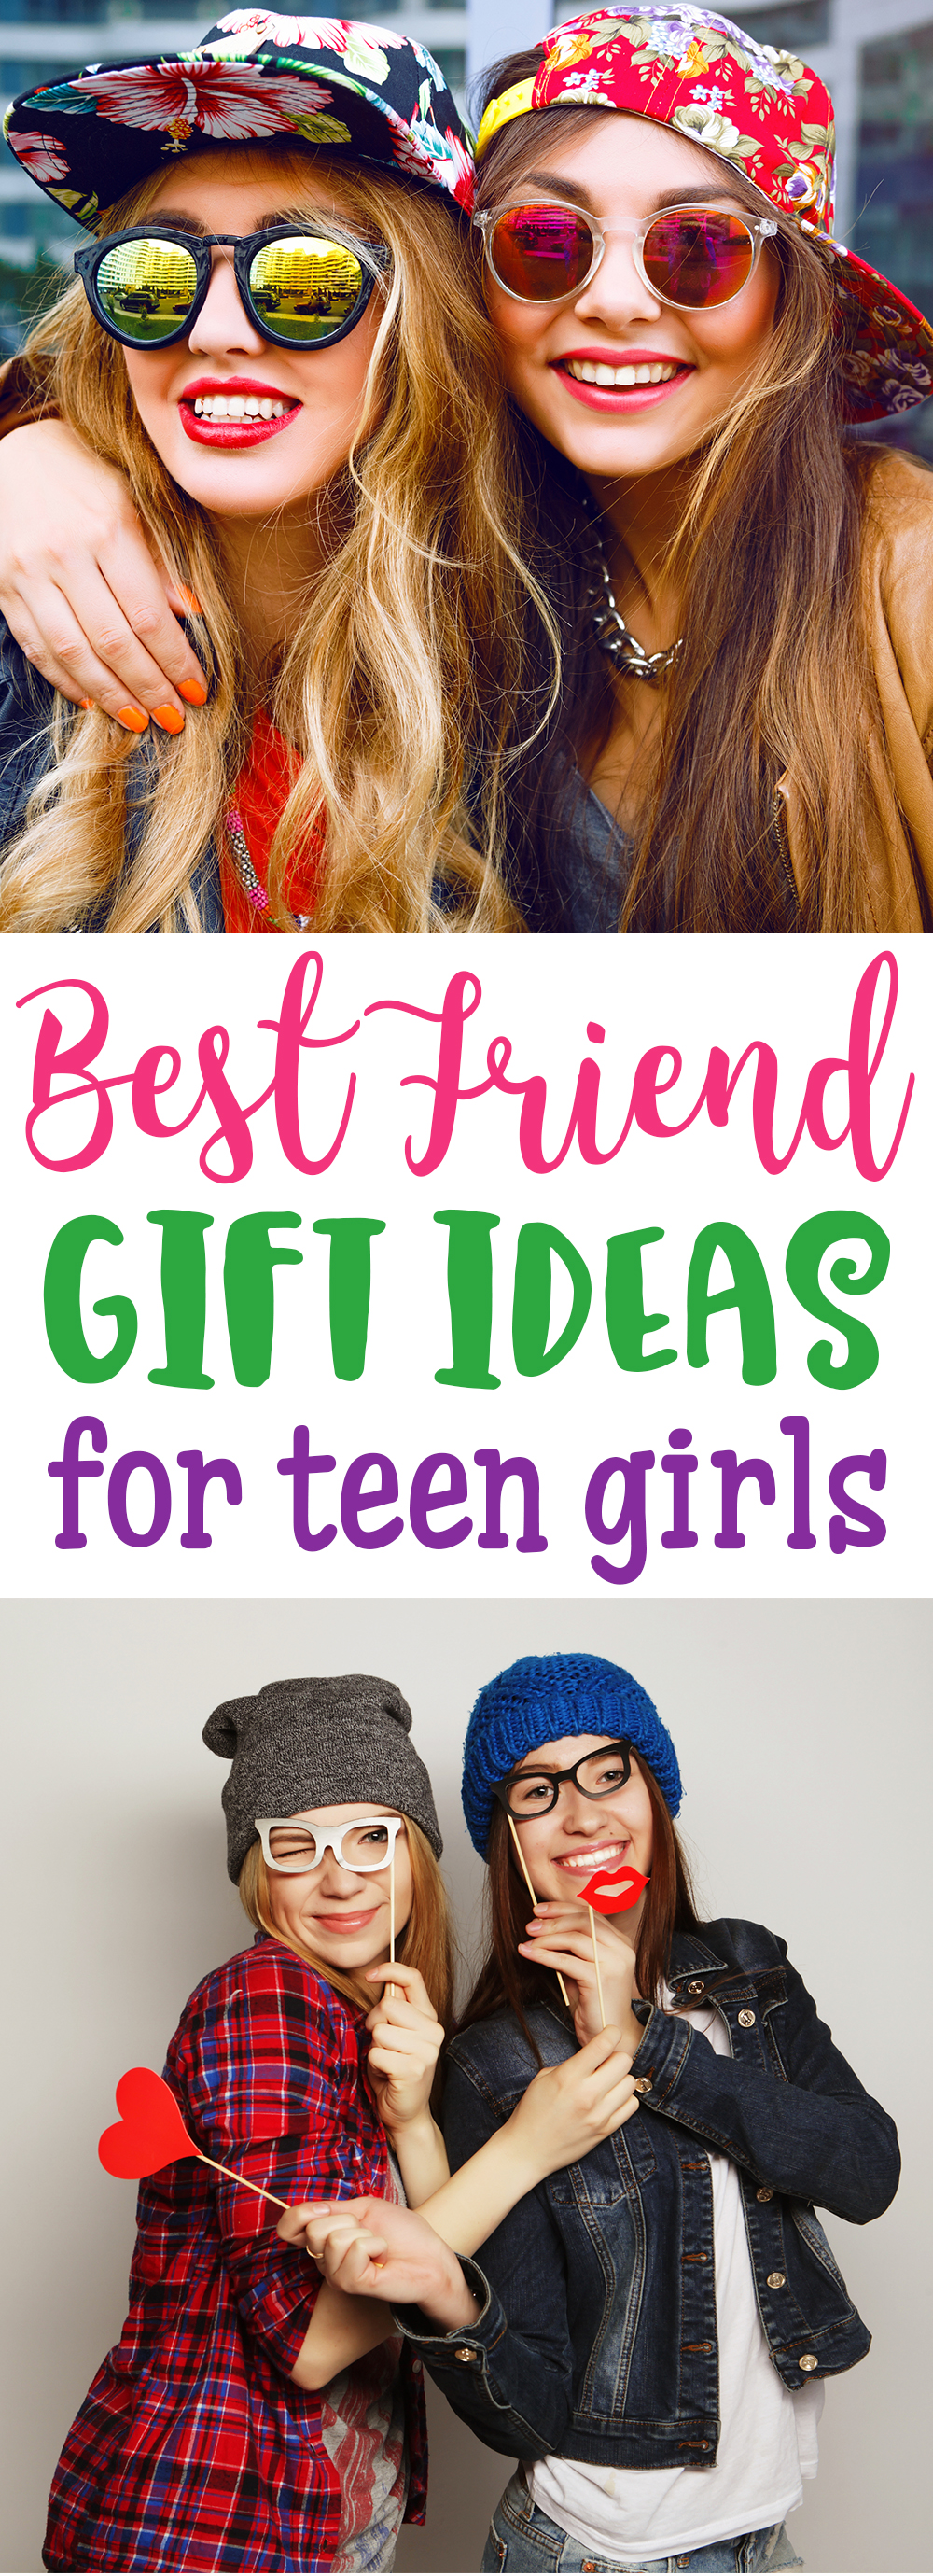 aac7ab2022 Best Friend Gift Ideas For Teens